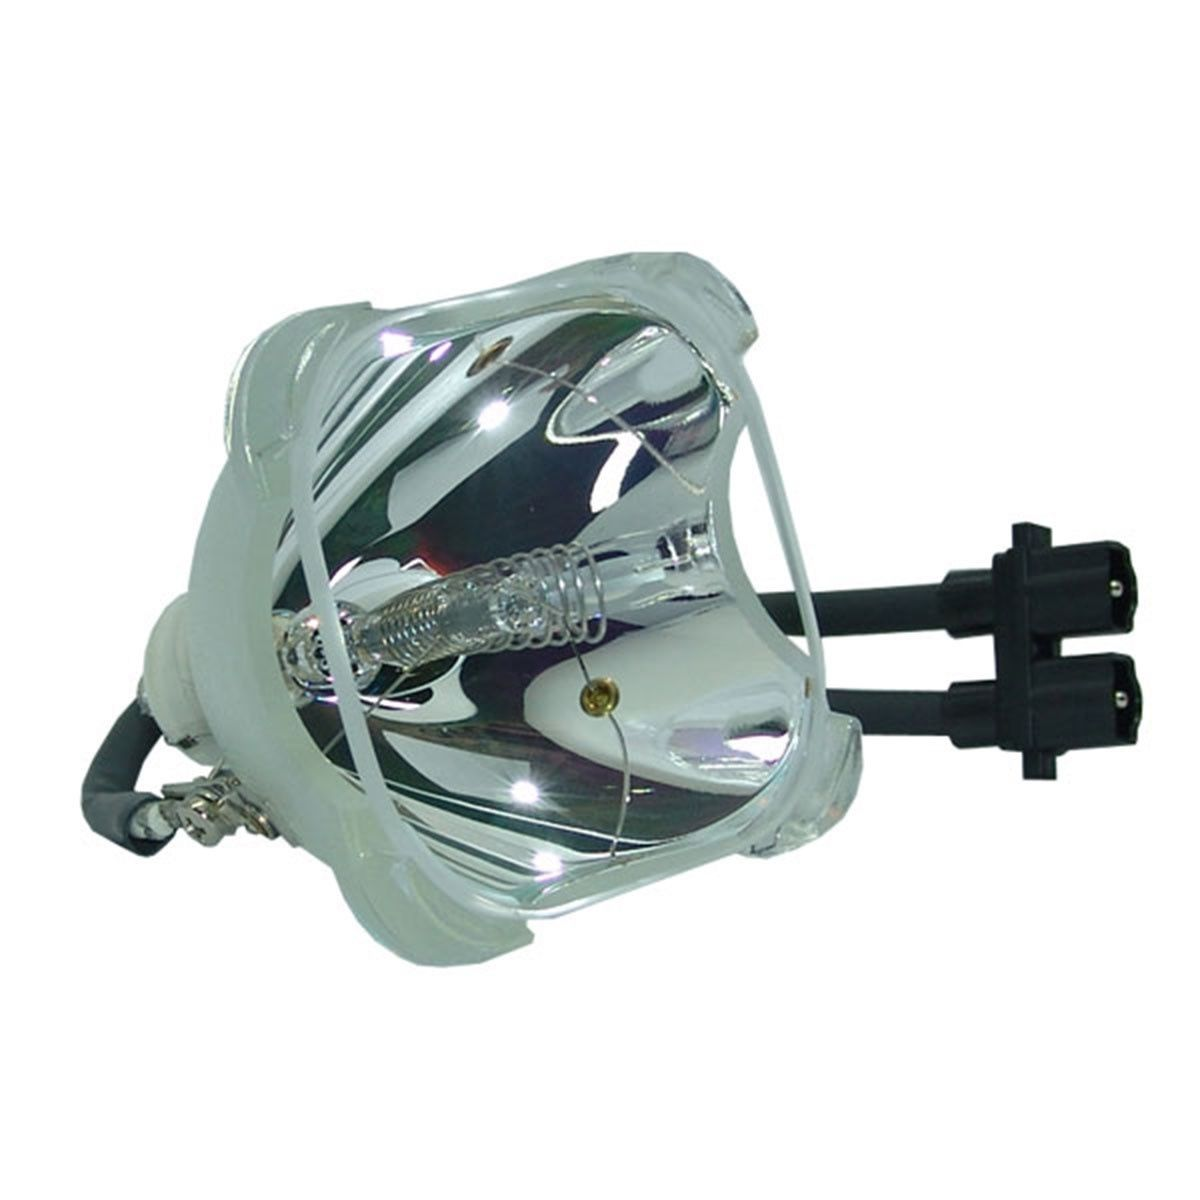 Compatible Bare Bulb 03-000648-01P for CHRISTIE LX20 Projector Lamp Bulb without housing compatible bare bulb lv lp17 9015a001 for canon lv 7555 projector lamp bulb without housing